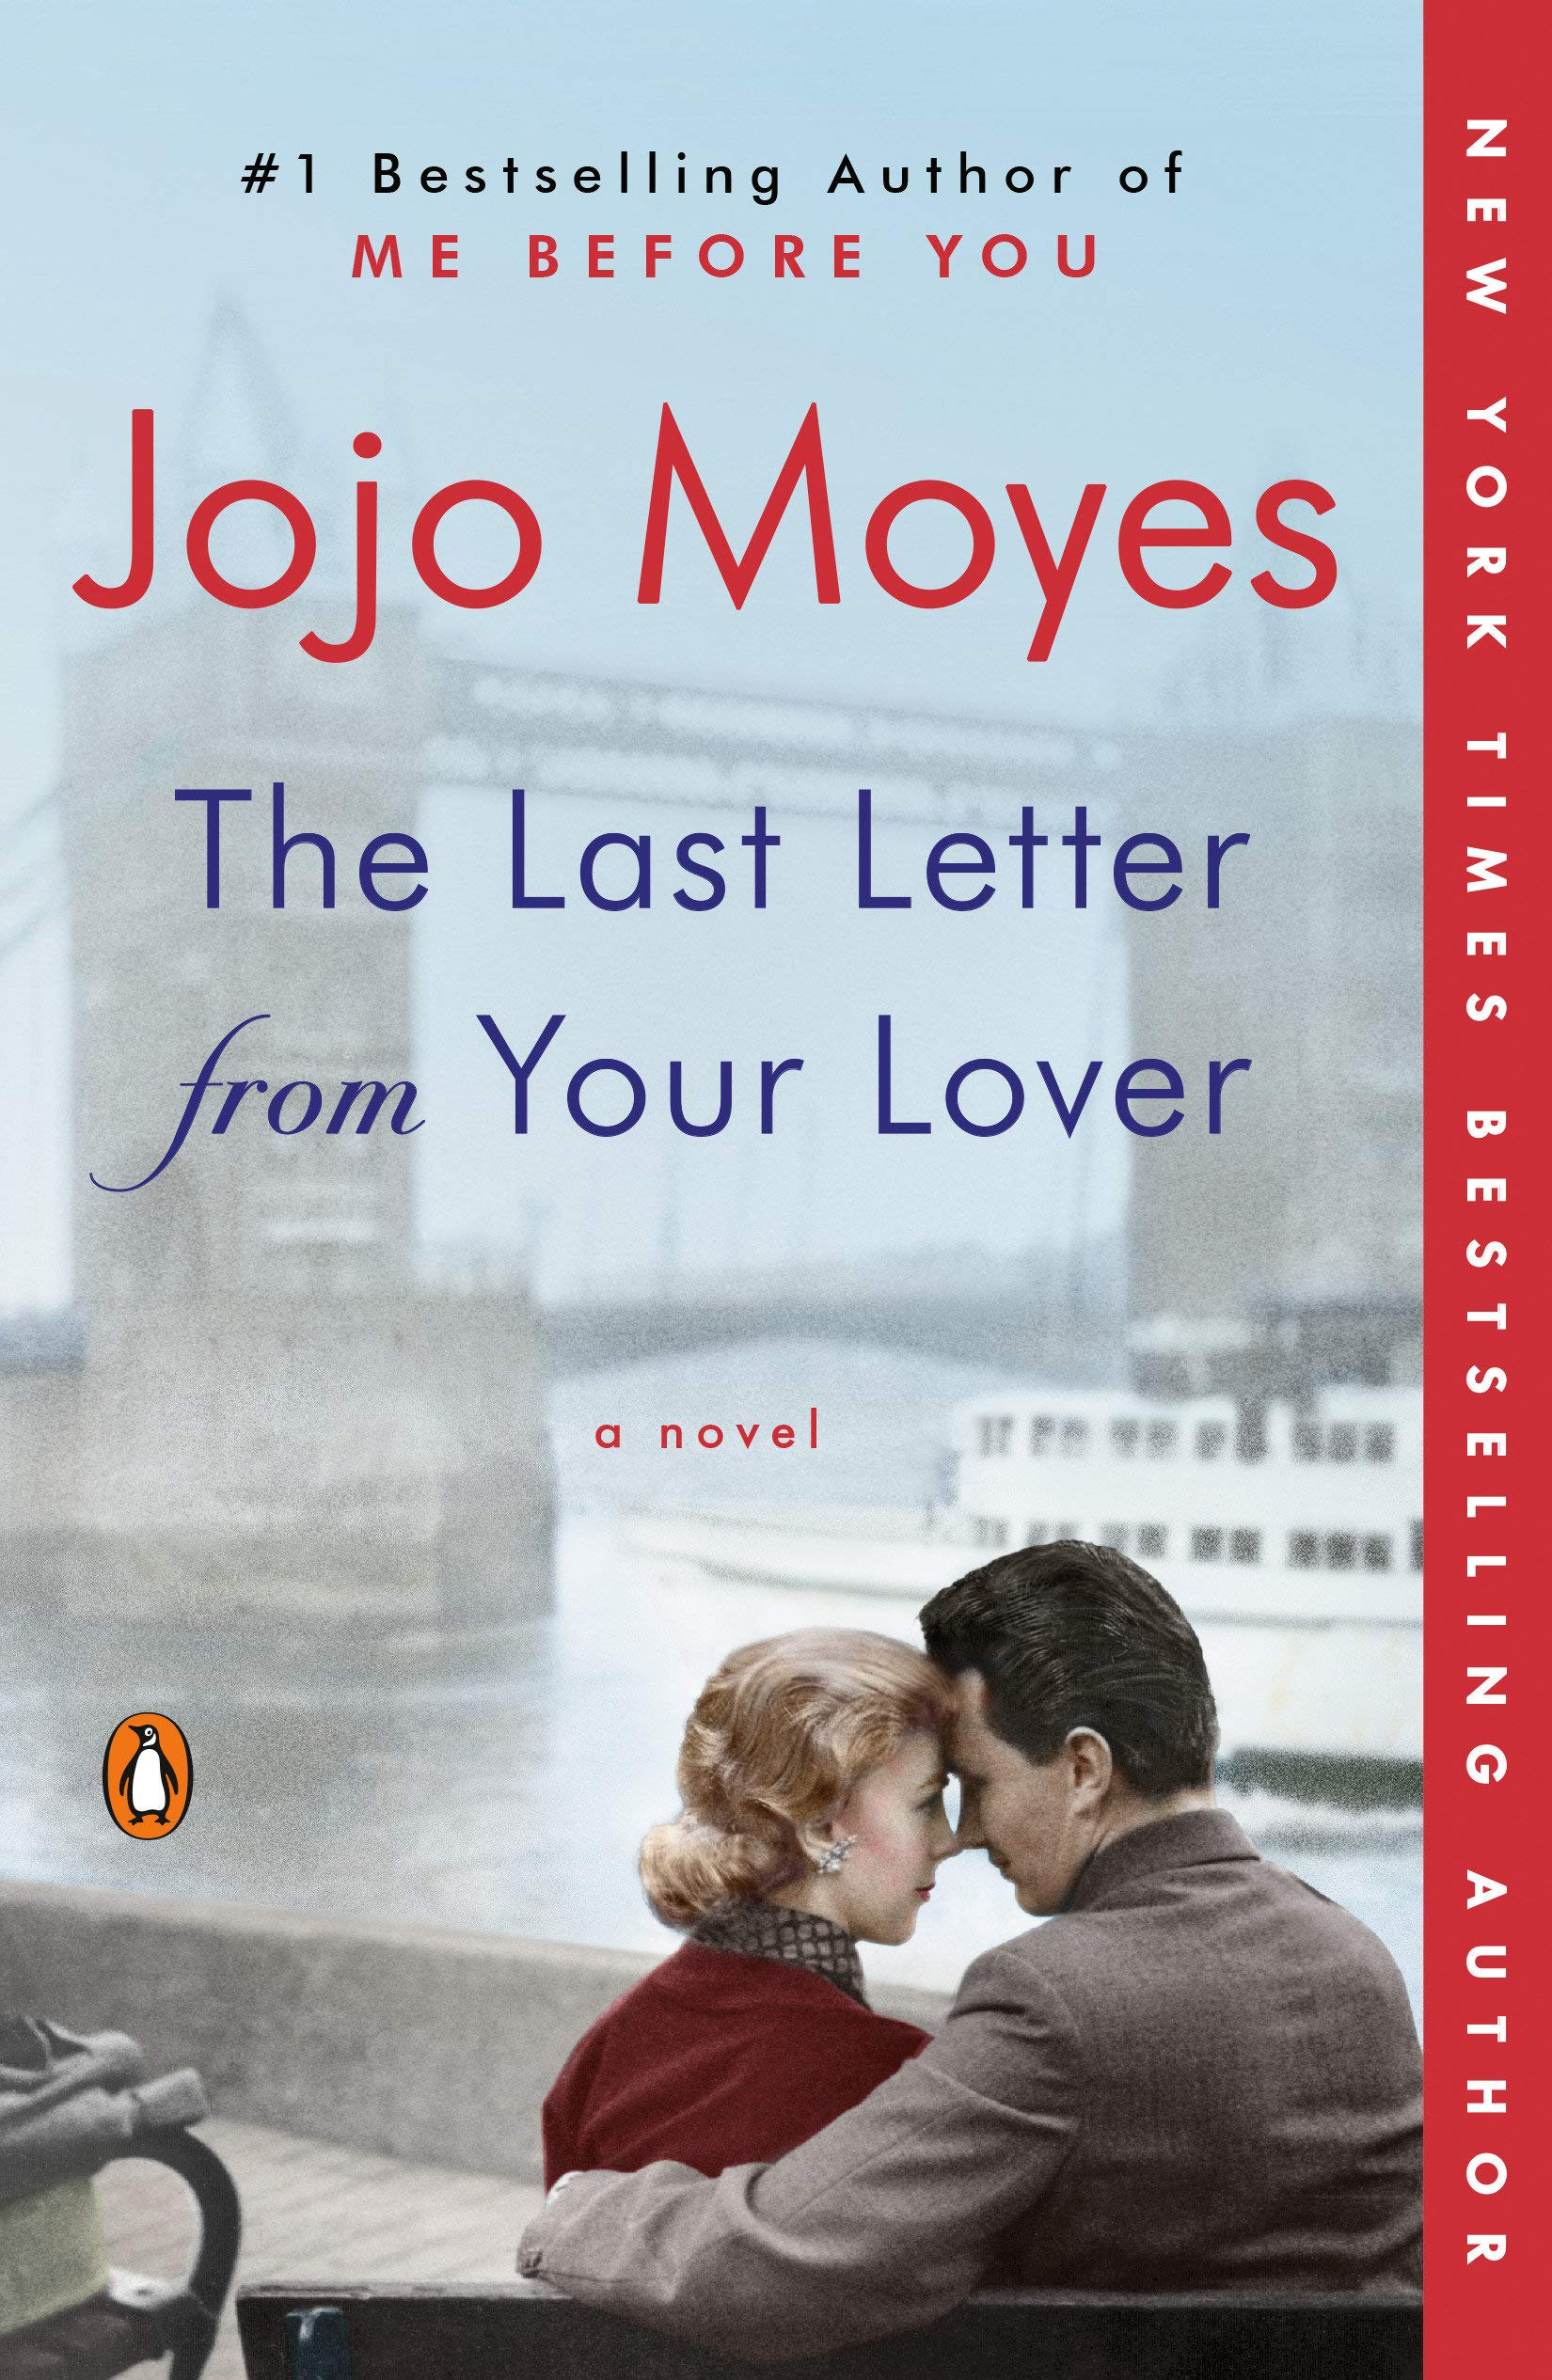 The Last Letter from Your Lover by Jojo Moyes Lavender Hill Designs Book Club December